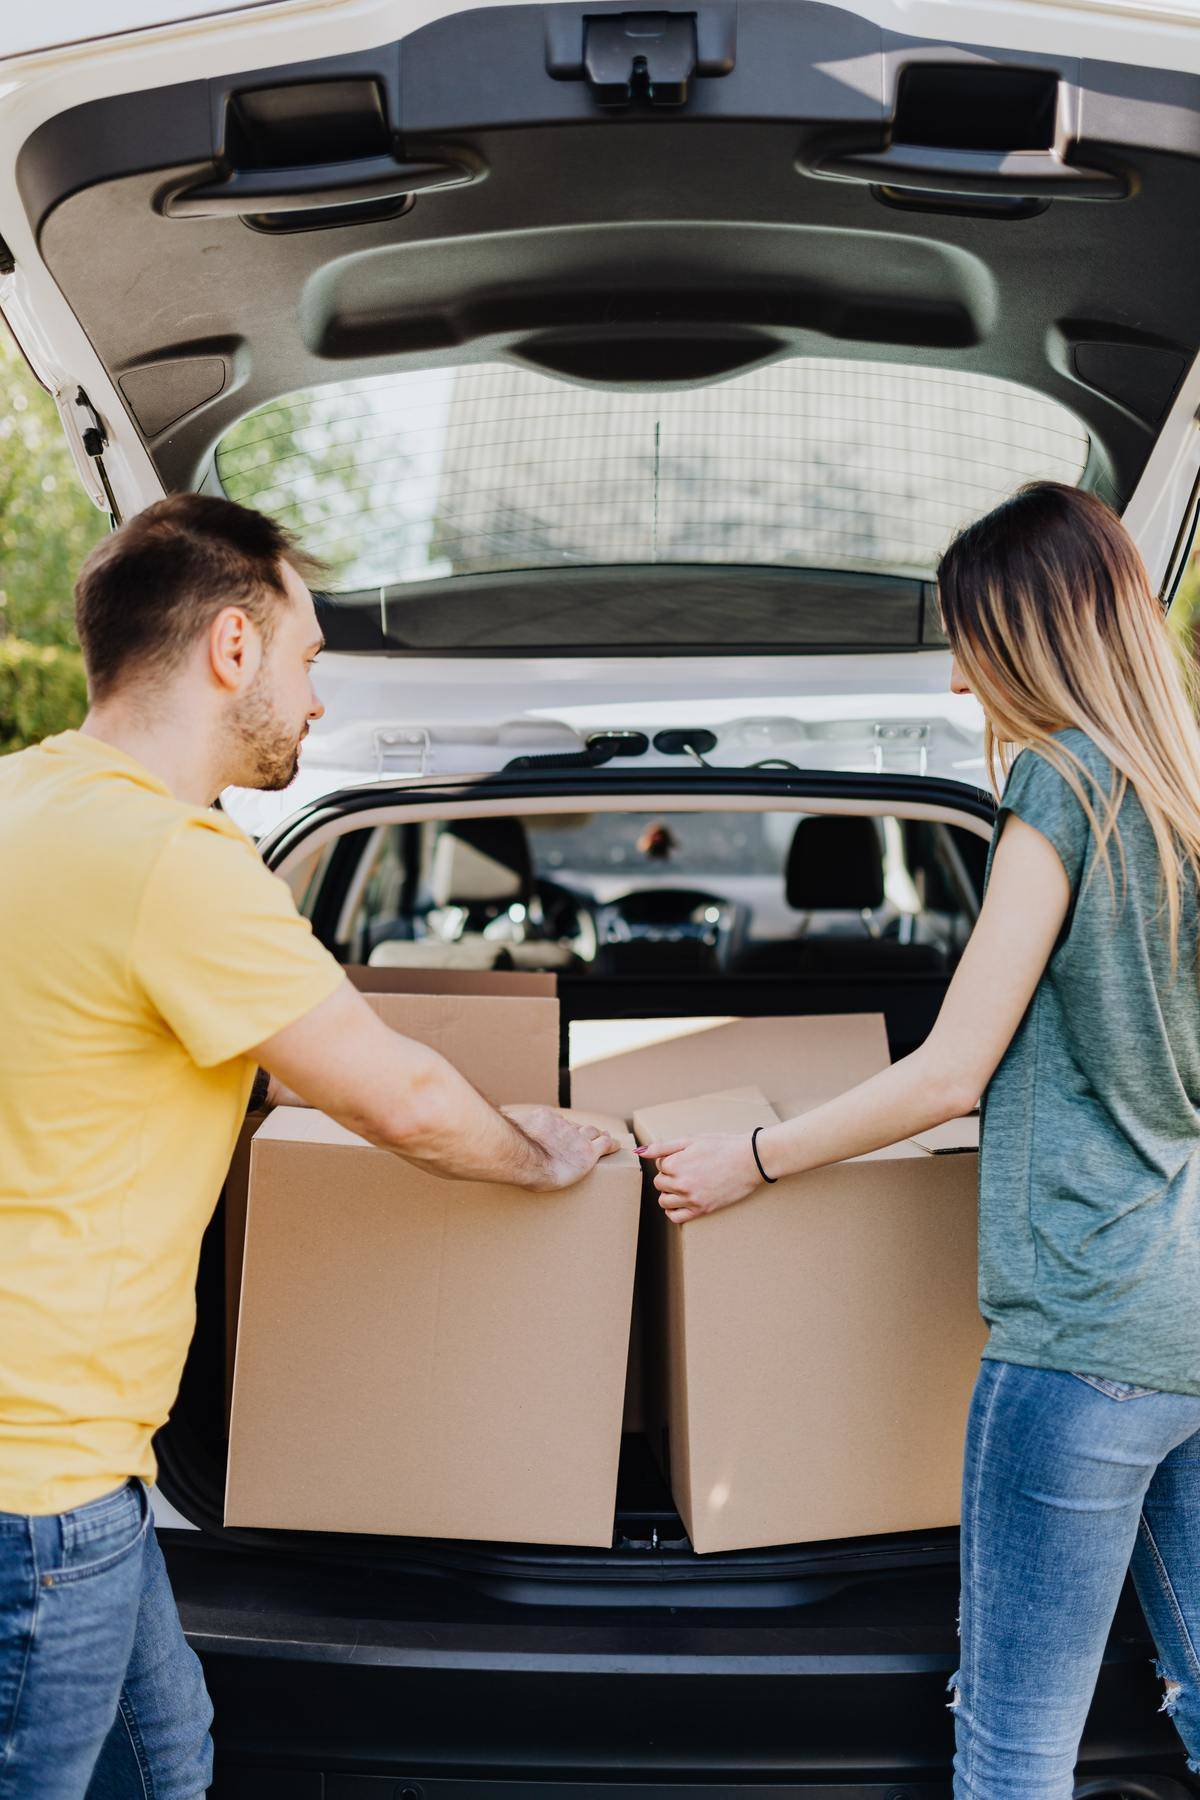 Couple unload cardboard boxes from trunk of car